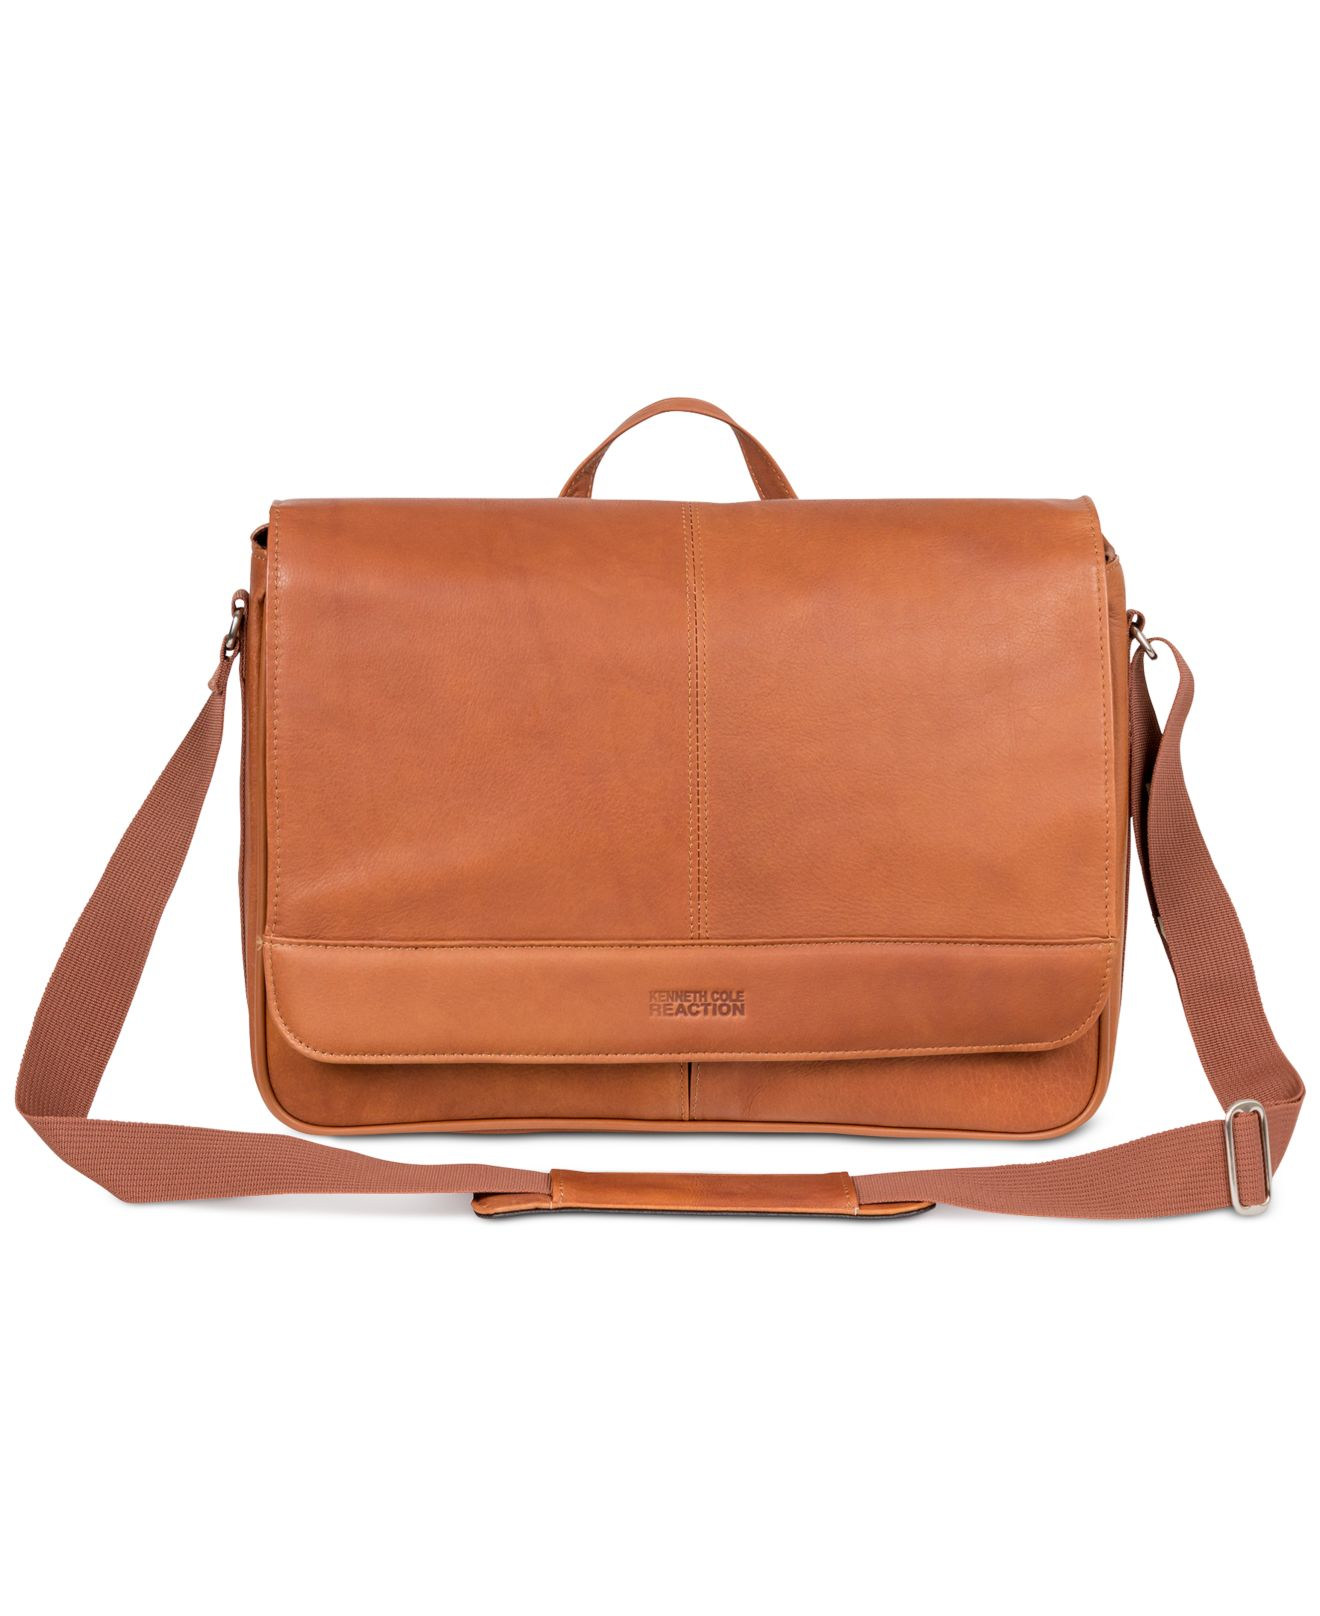 Lyst - Kenneth Cole Reaction Columbian Leather Risky Business Single ... 6df9209265e24